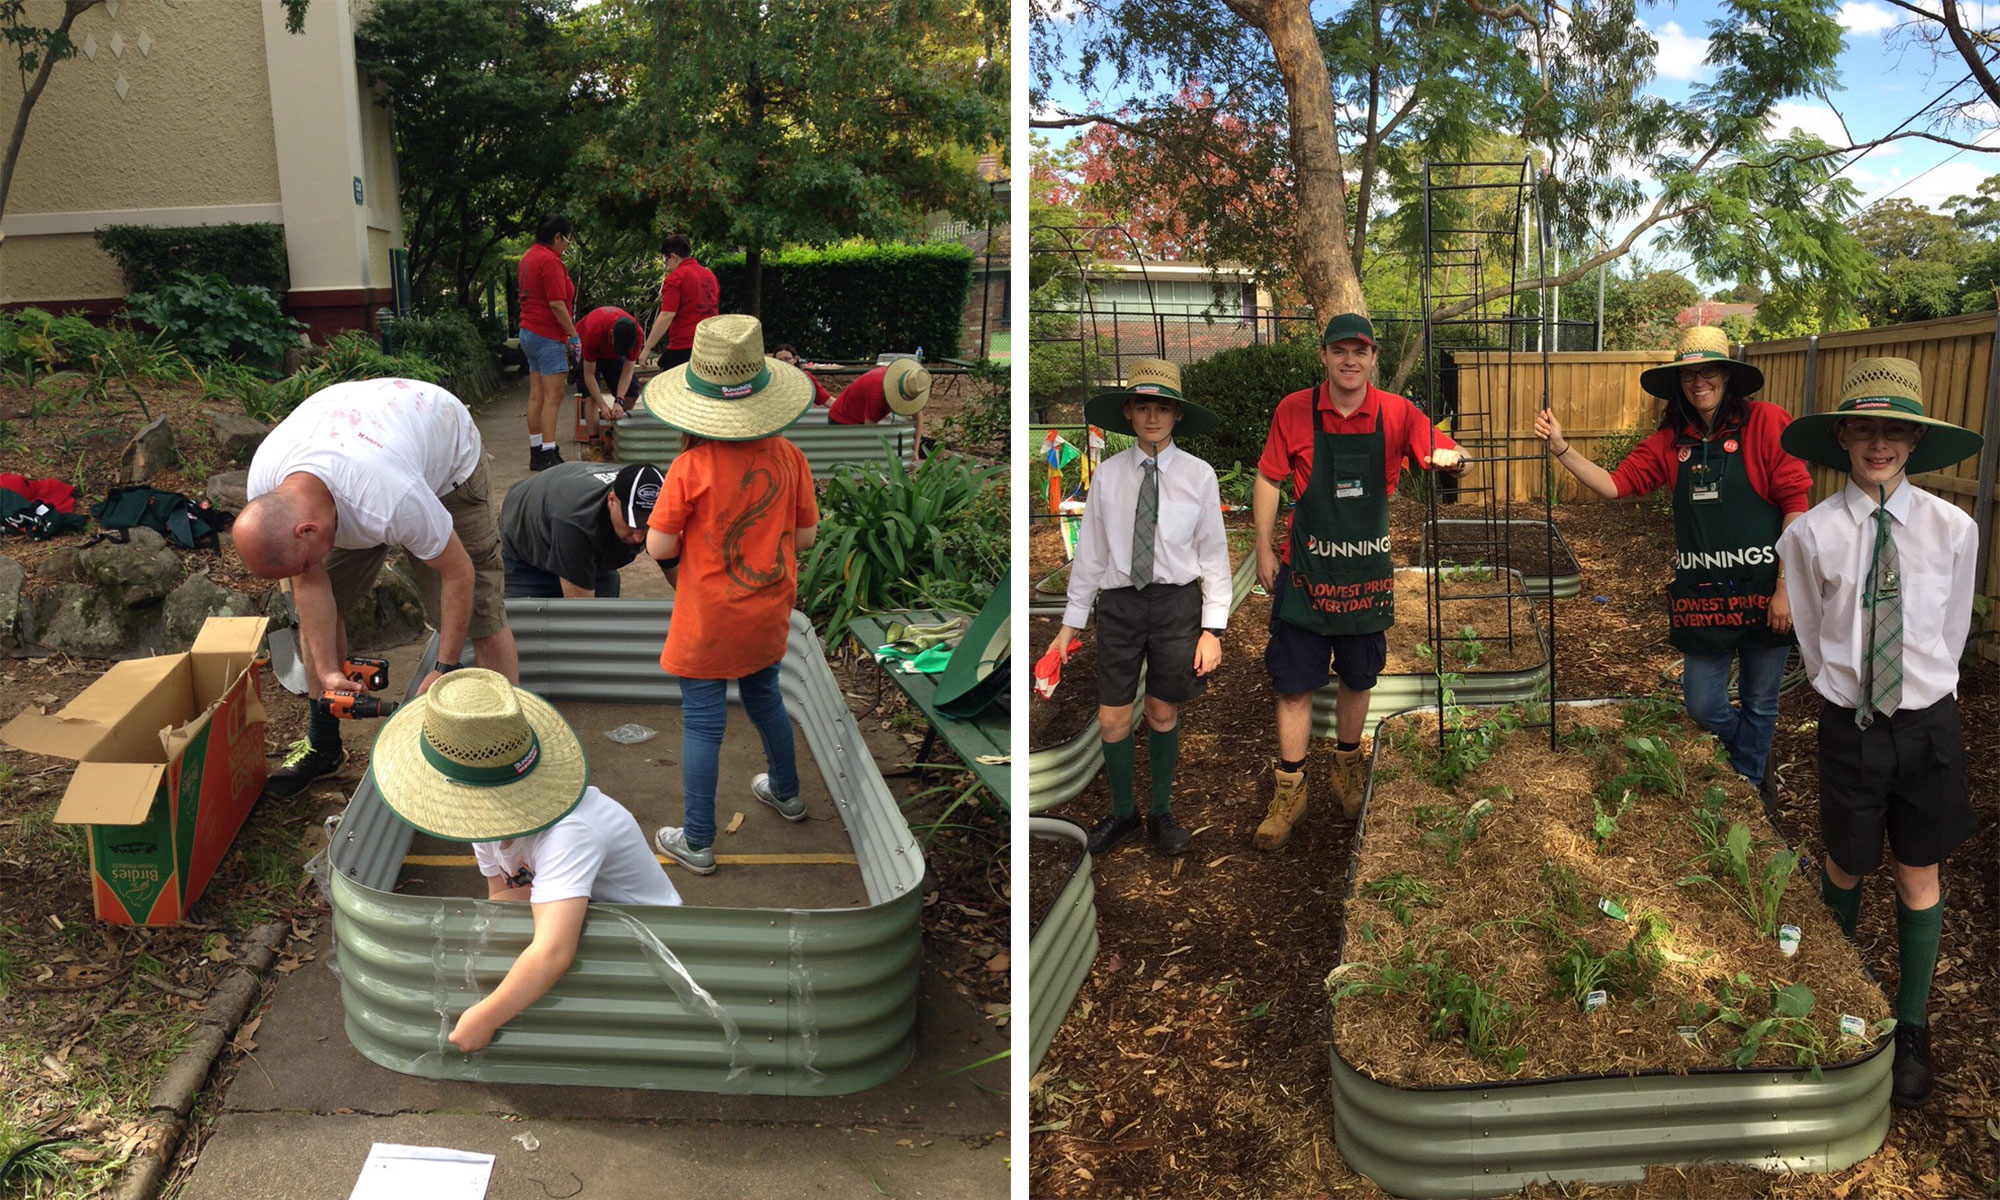 Students of Arden Anglican school build a garden box for their veggie patch with the help of Bunnings